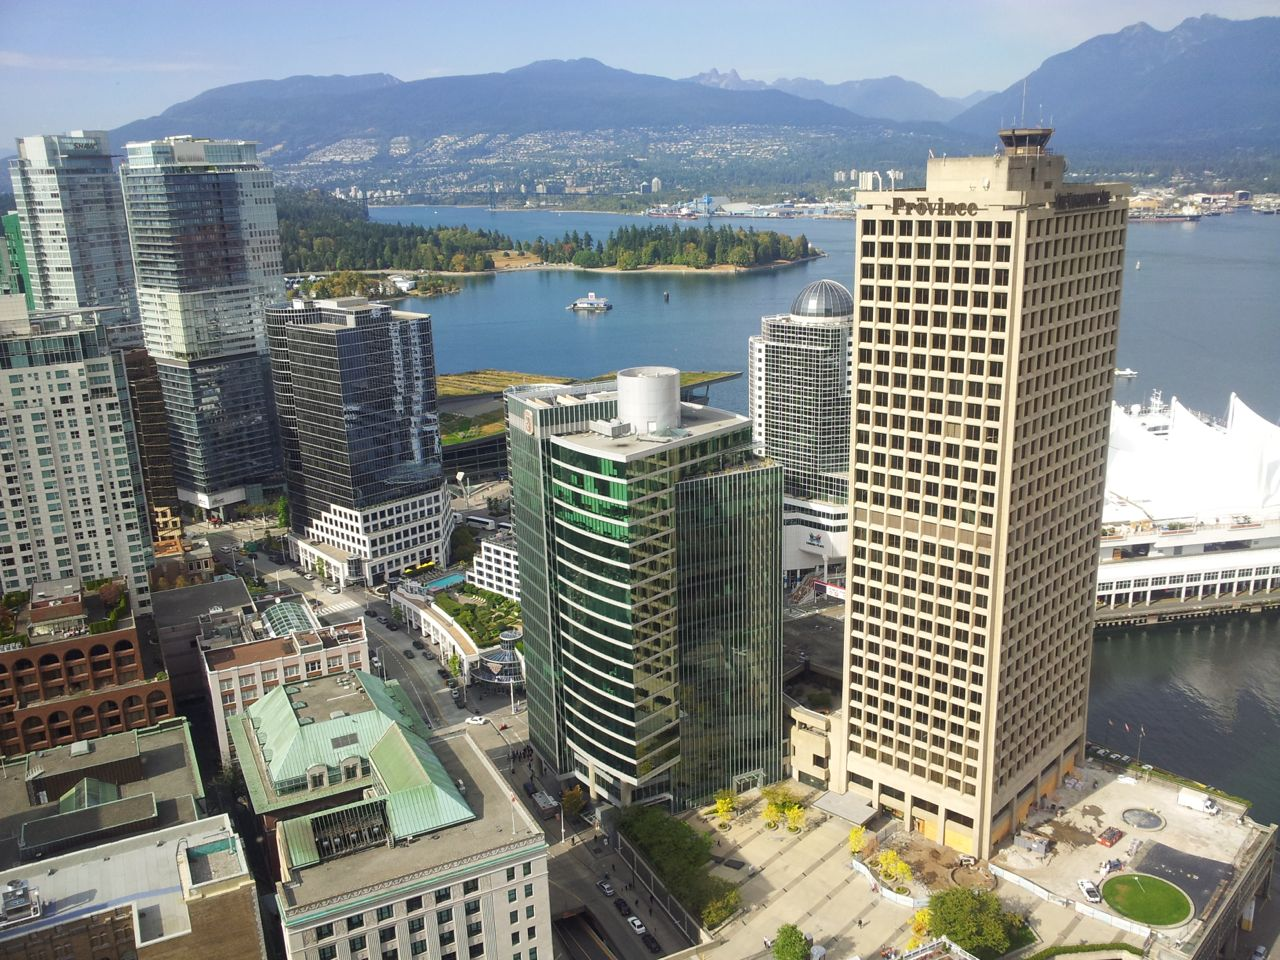 world cities for august 2012 ranks vancouver third in the world out of